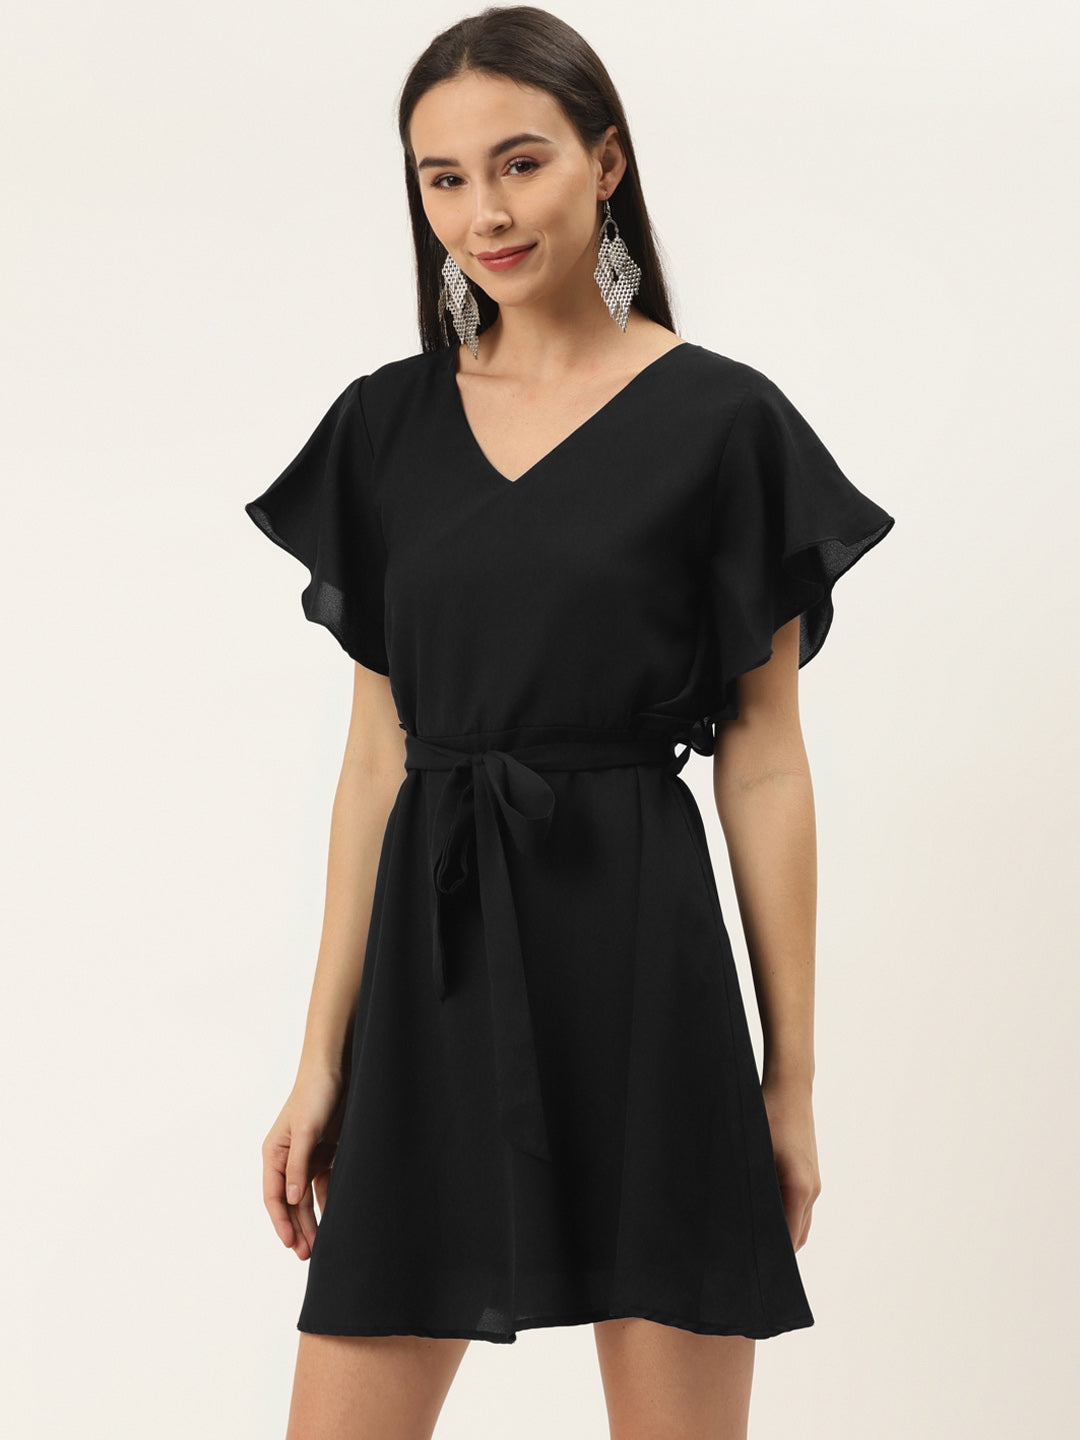 Solid Party Black Dress